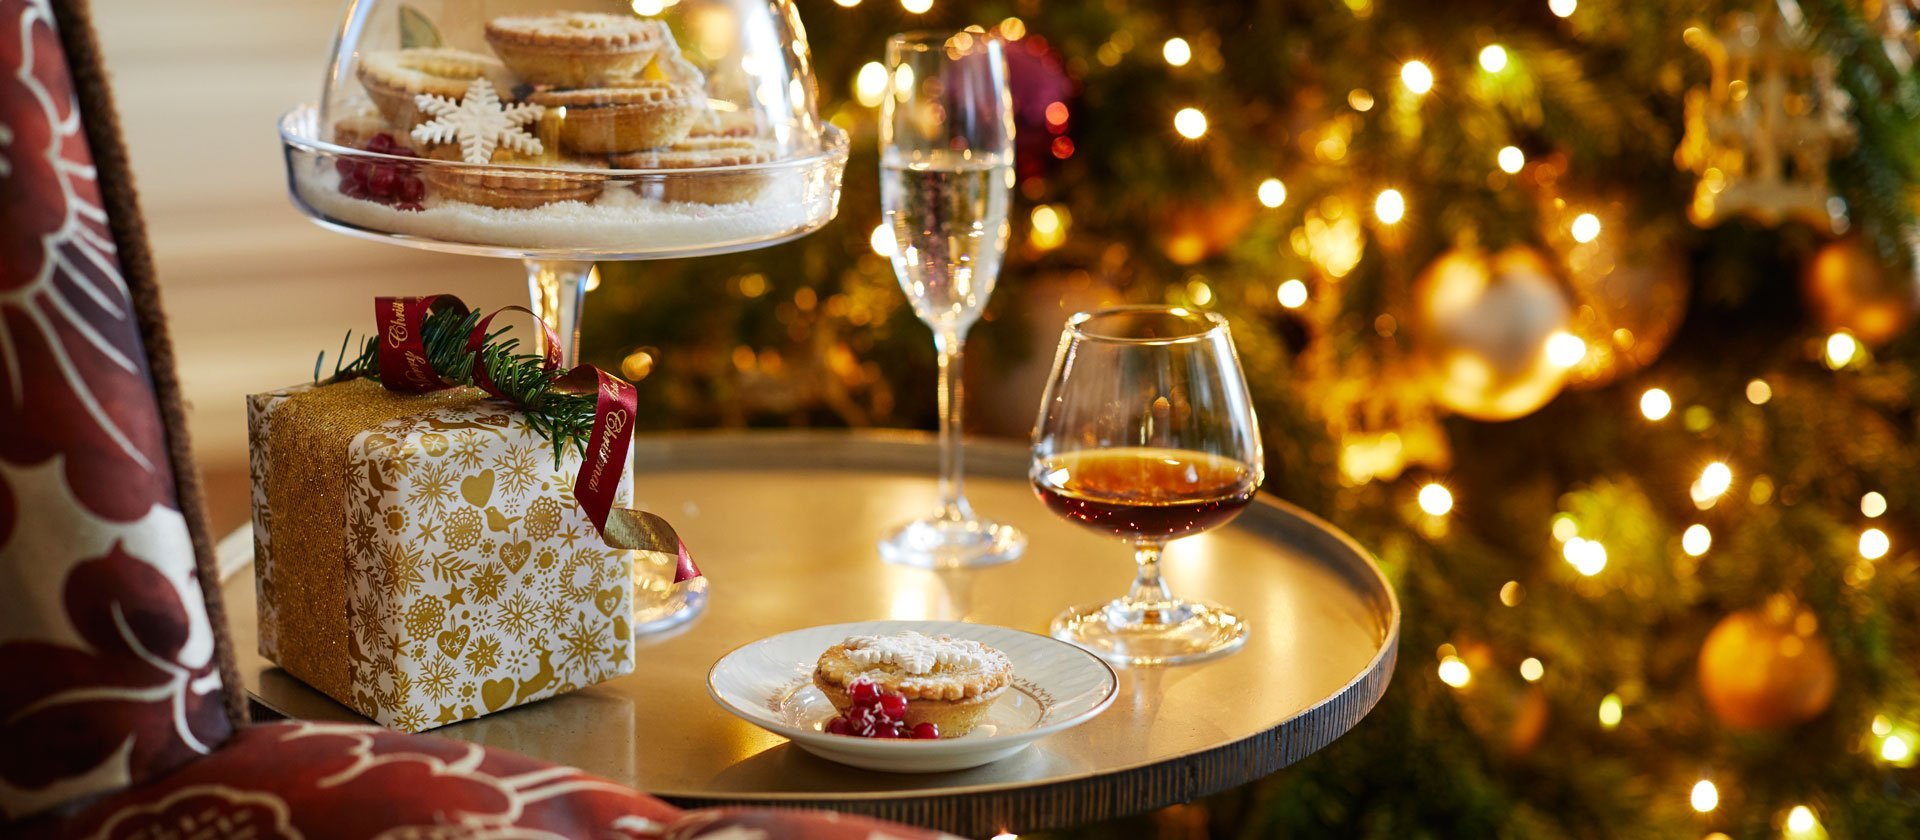 Mince pies and wine on a tray at The Dorchester Hotel